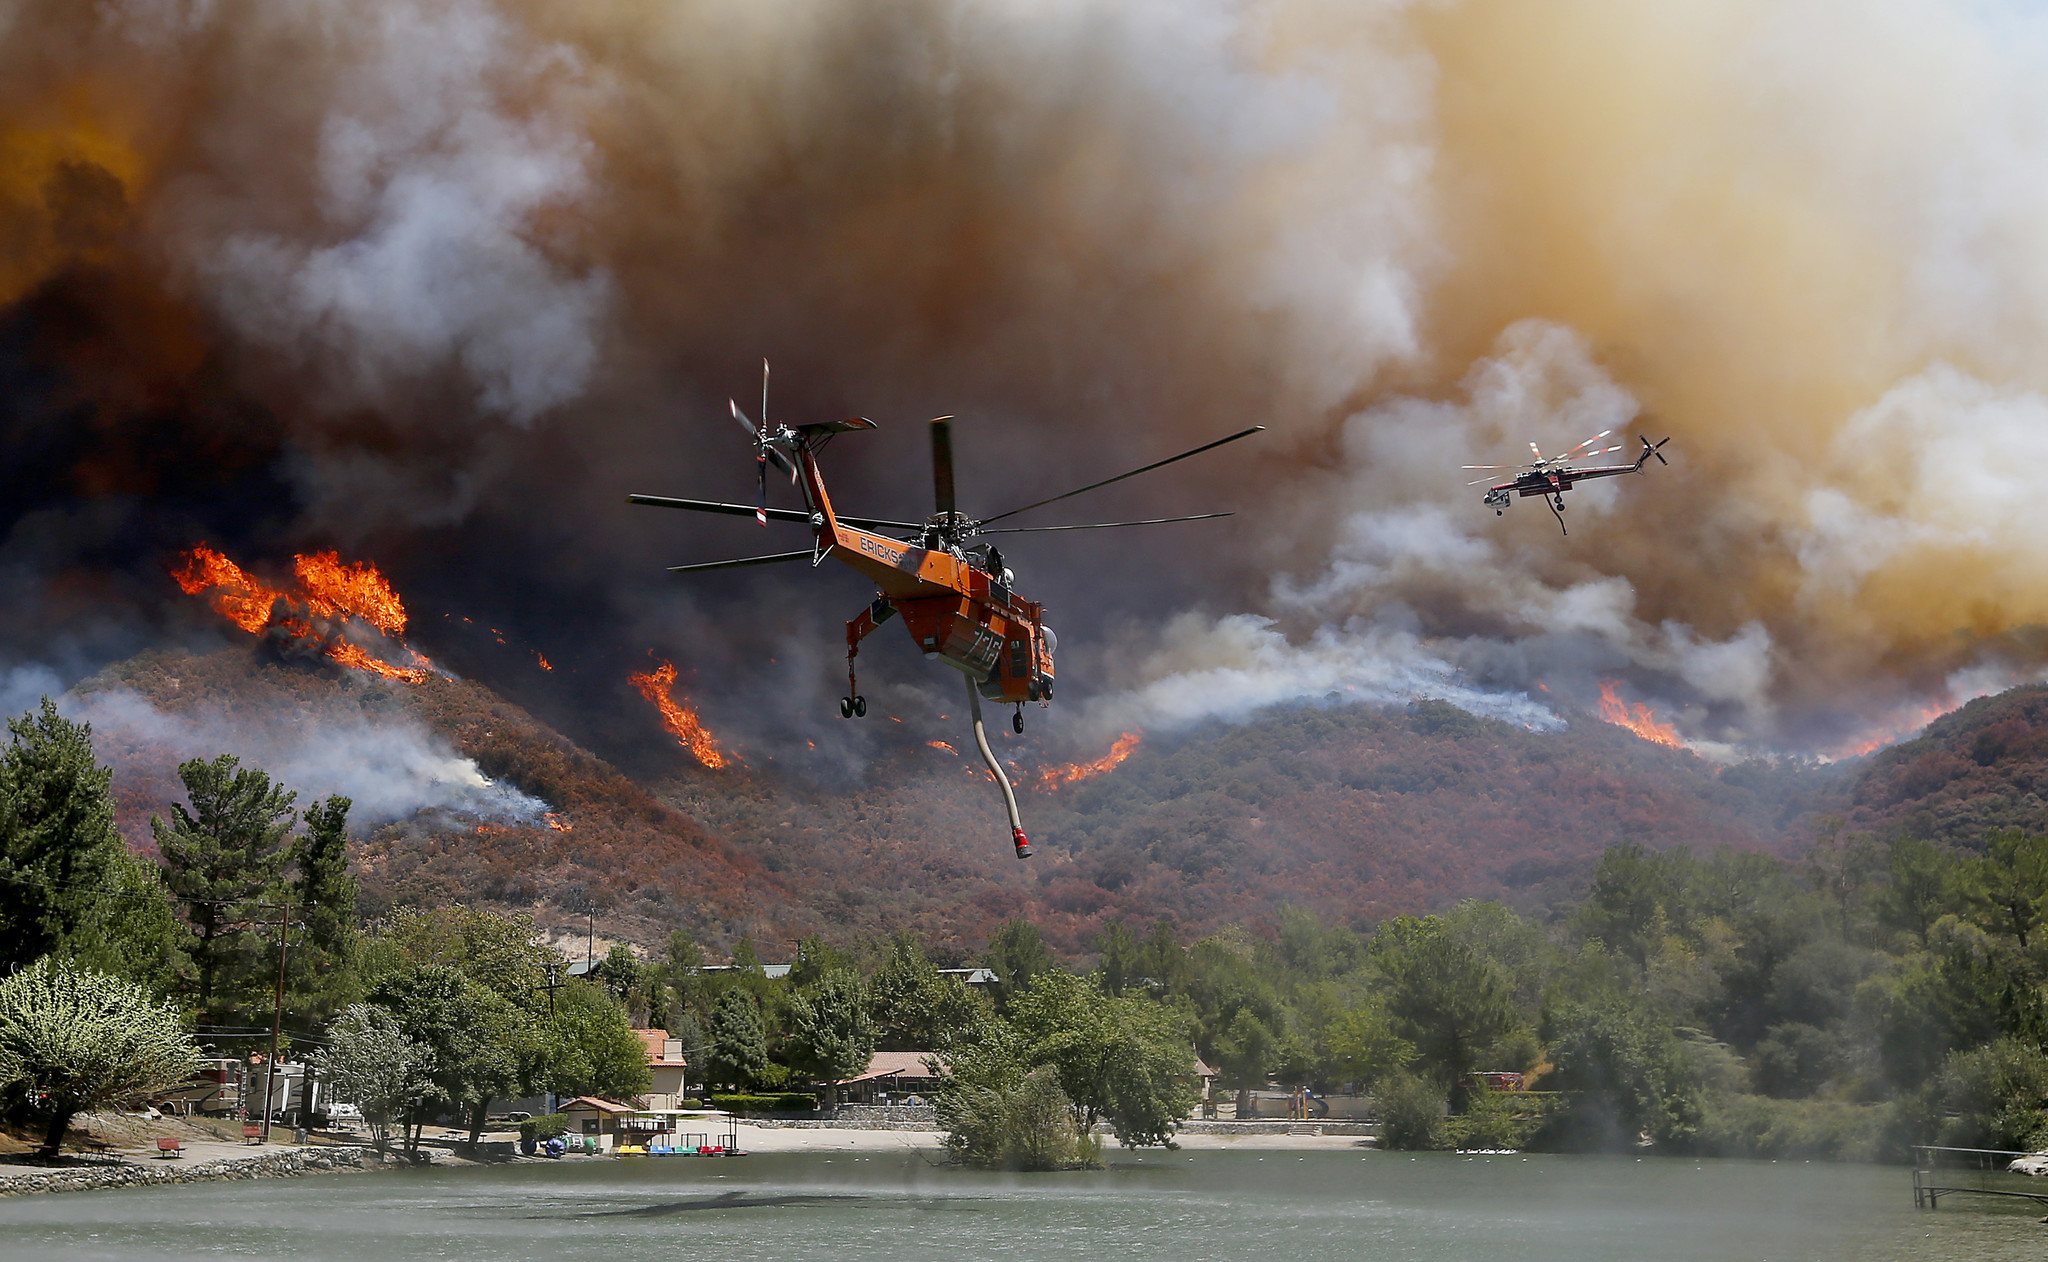 Firefighting helicopters battle the Blue Cut fire as it burns out of control around the community of Lytle Creek. (Luis Sinco / Los Angeles Times)